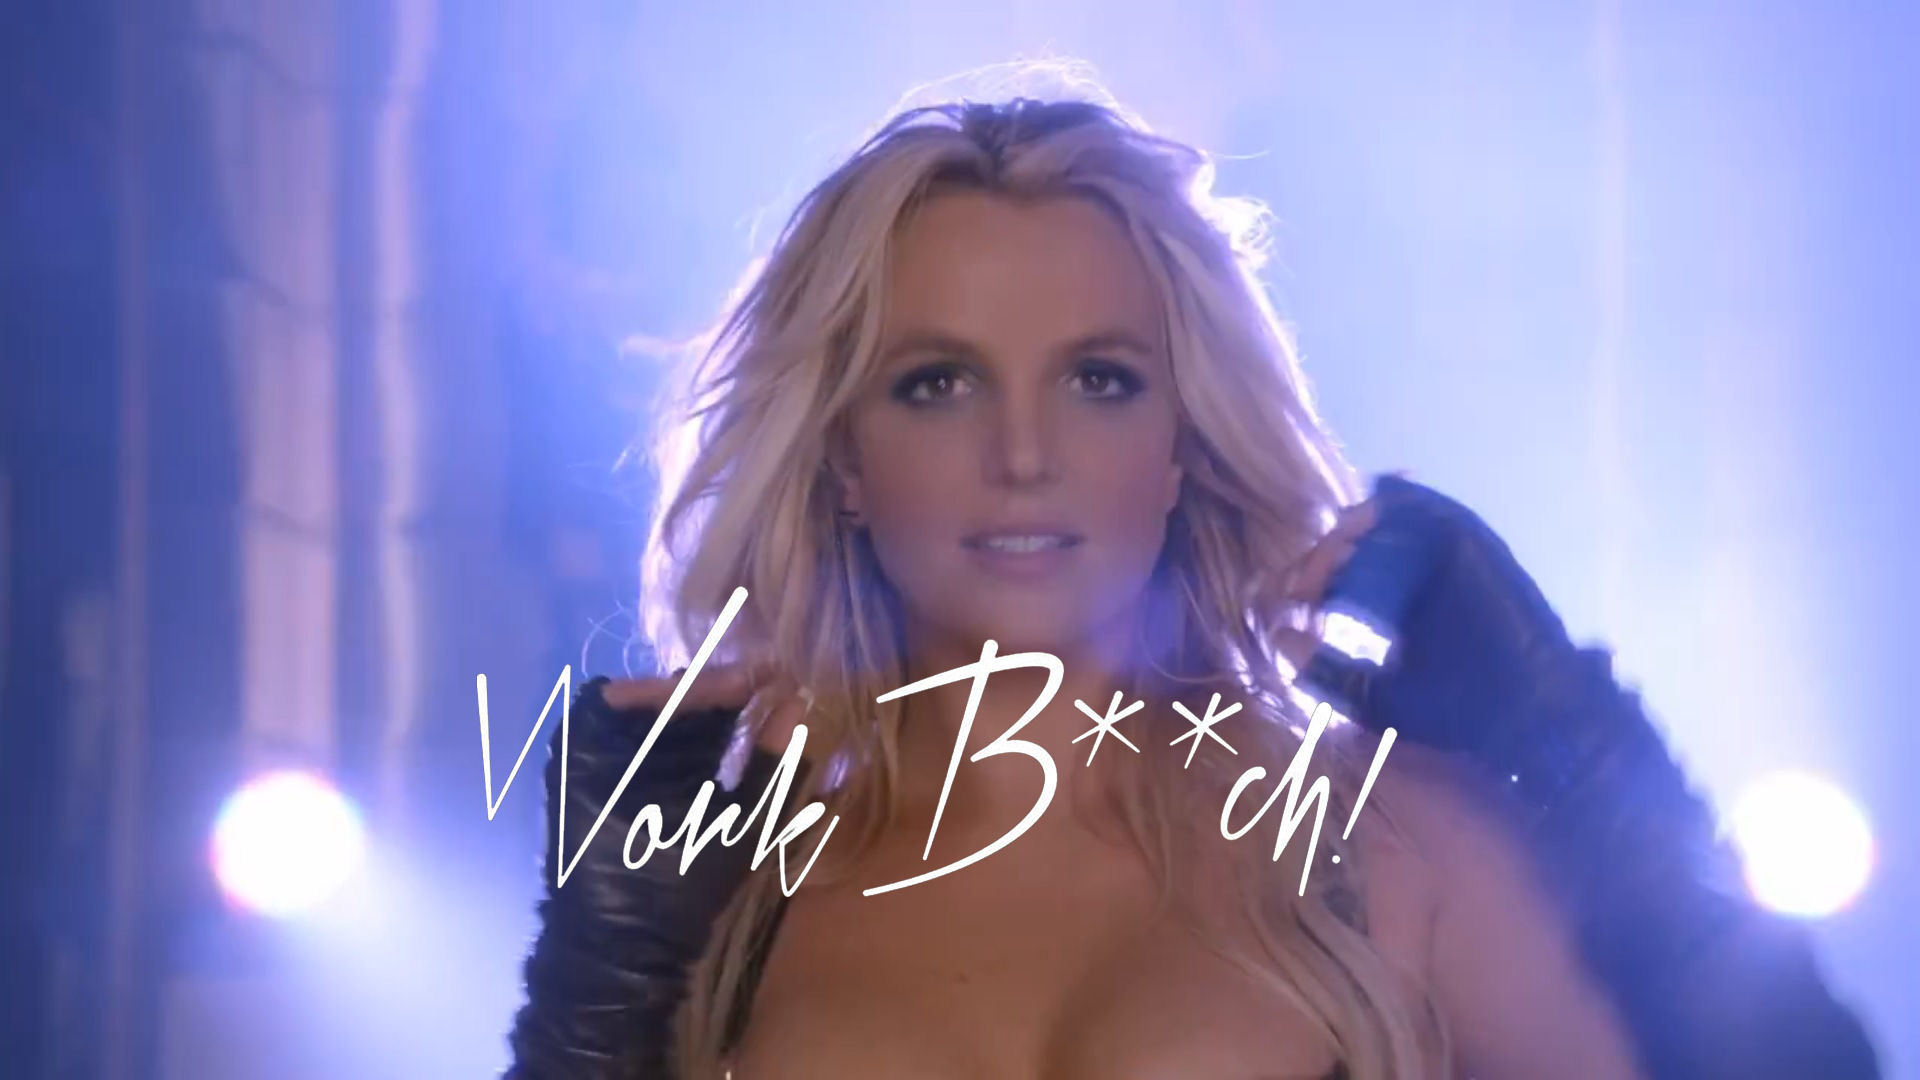 image Britney spears work bitch uncensored version